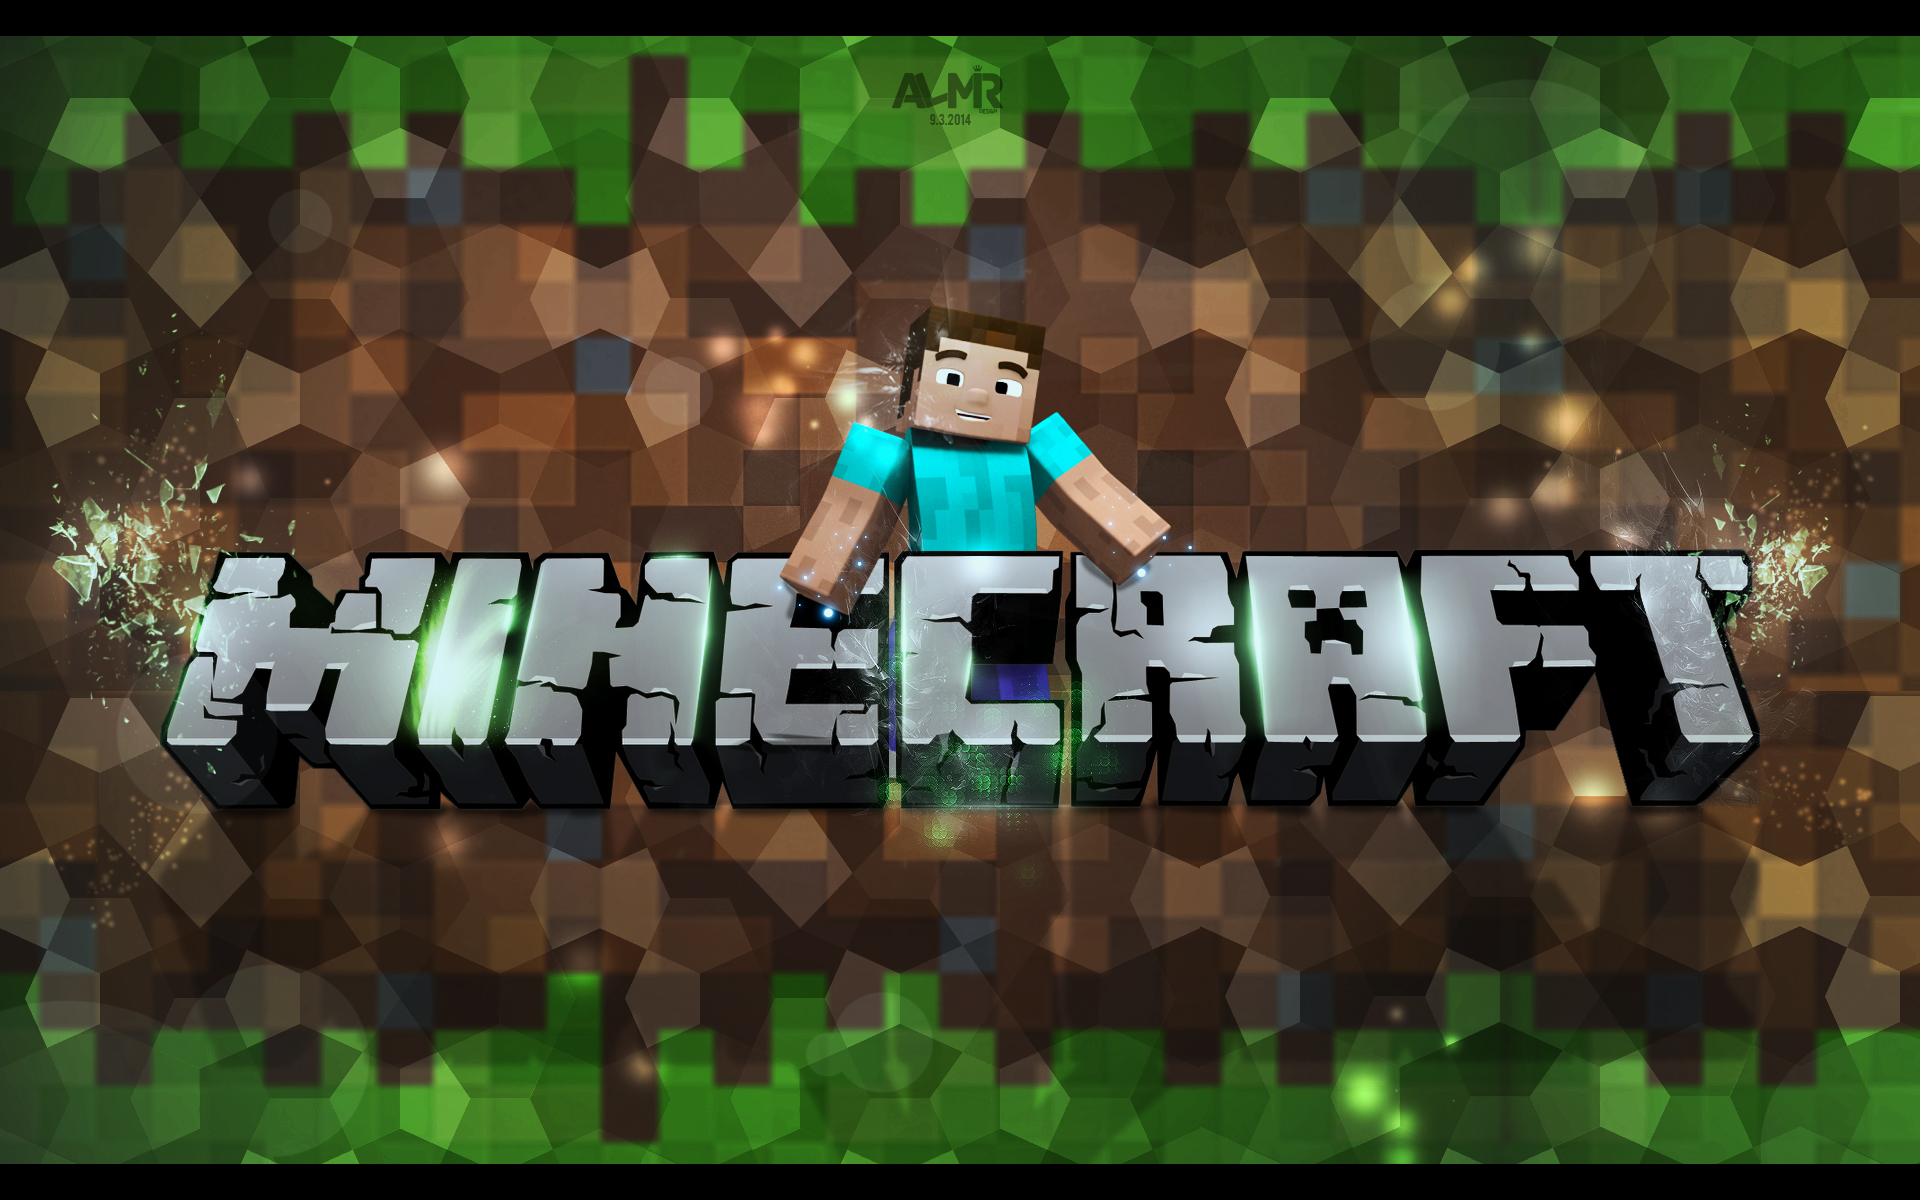 Beautiful Wallpaper Minecraft Design - minecraft_wallpaper_by_almir_imamovic_by_closedesign-d7xt4of  You Should Have_511434.jpg